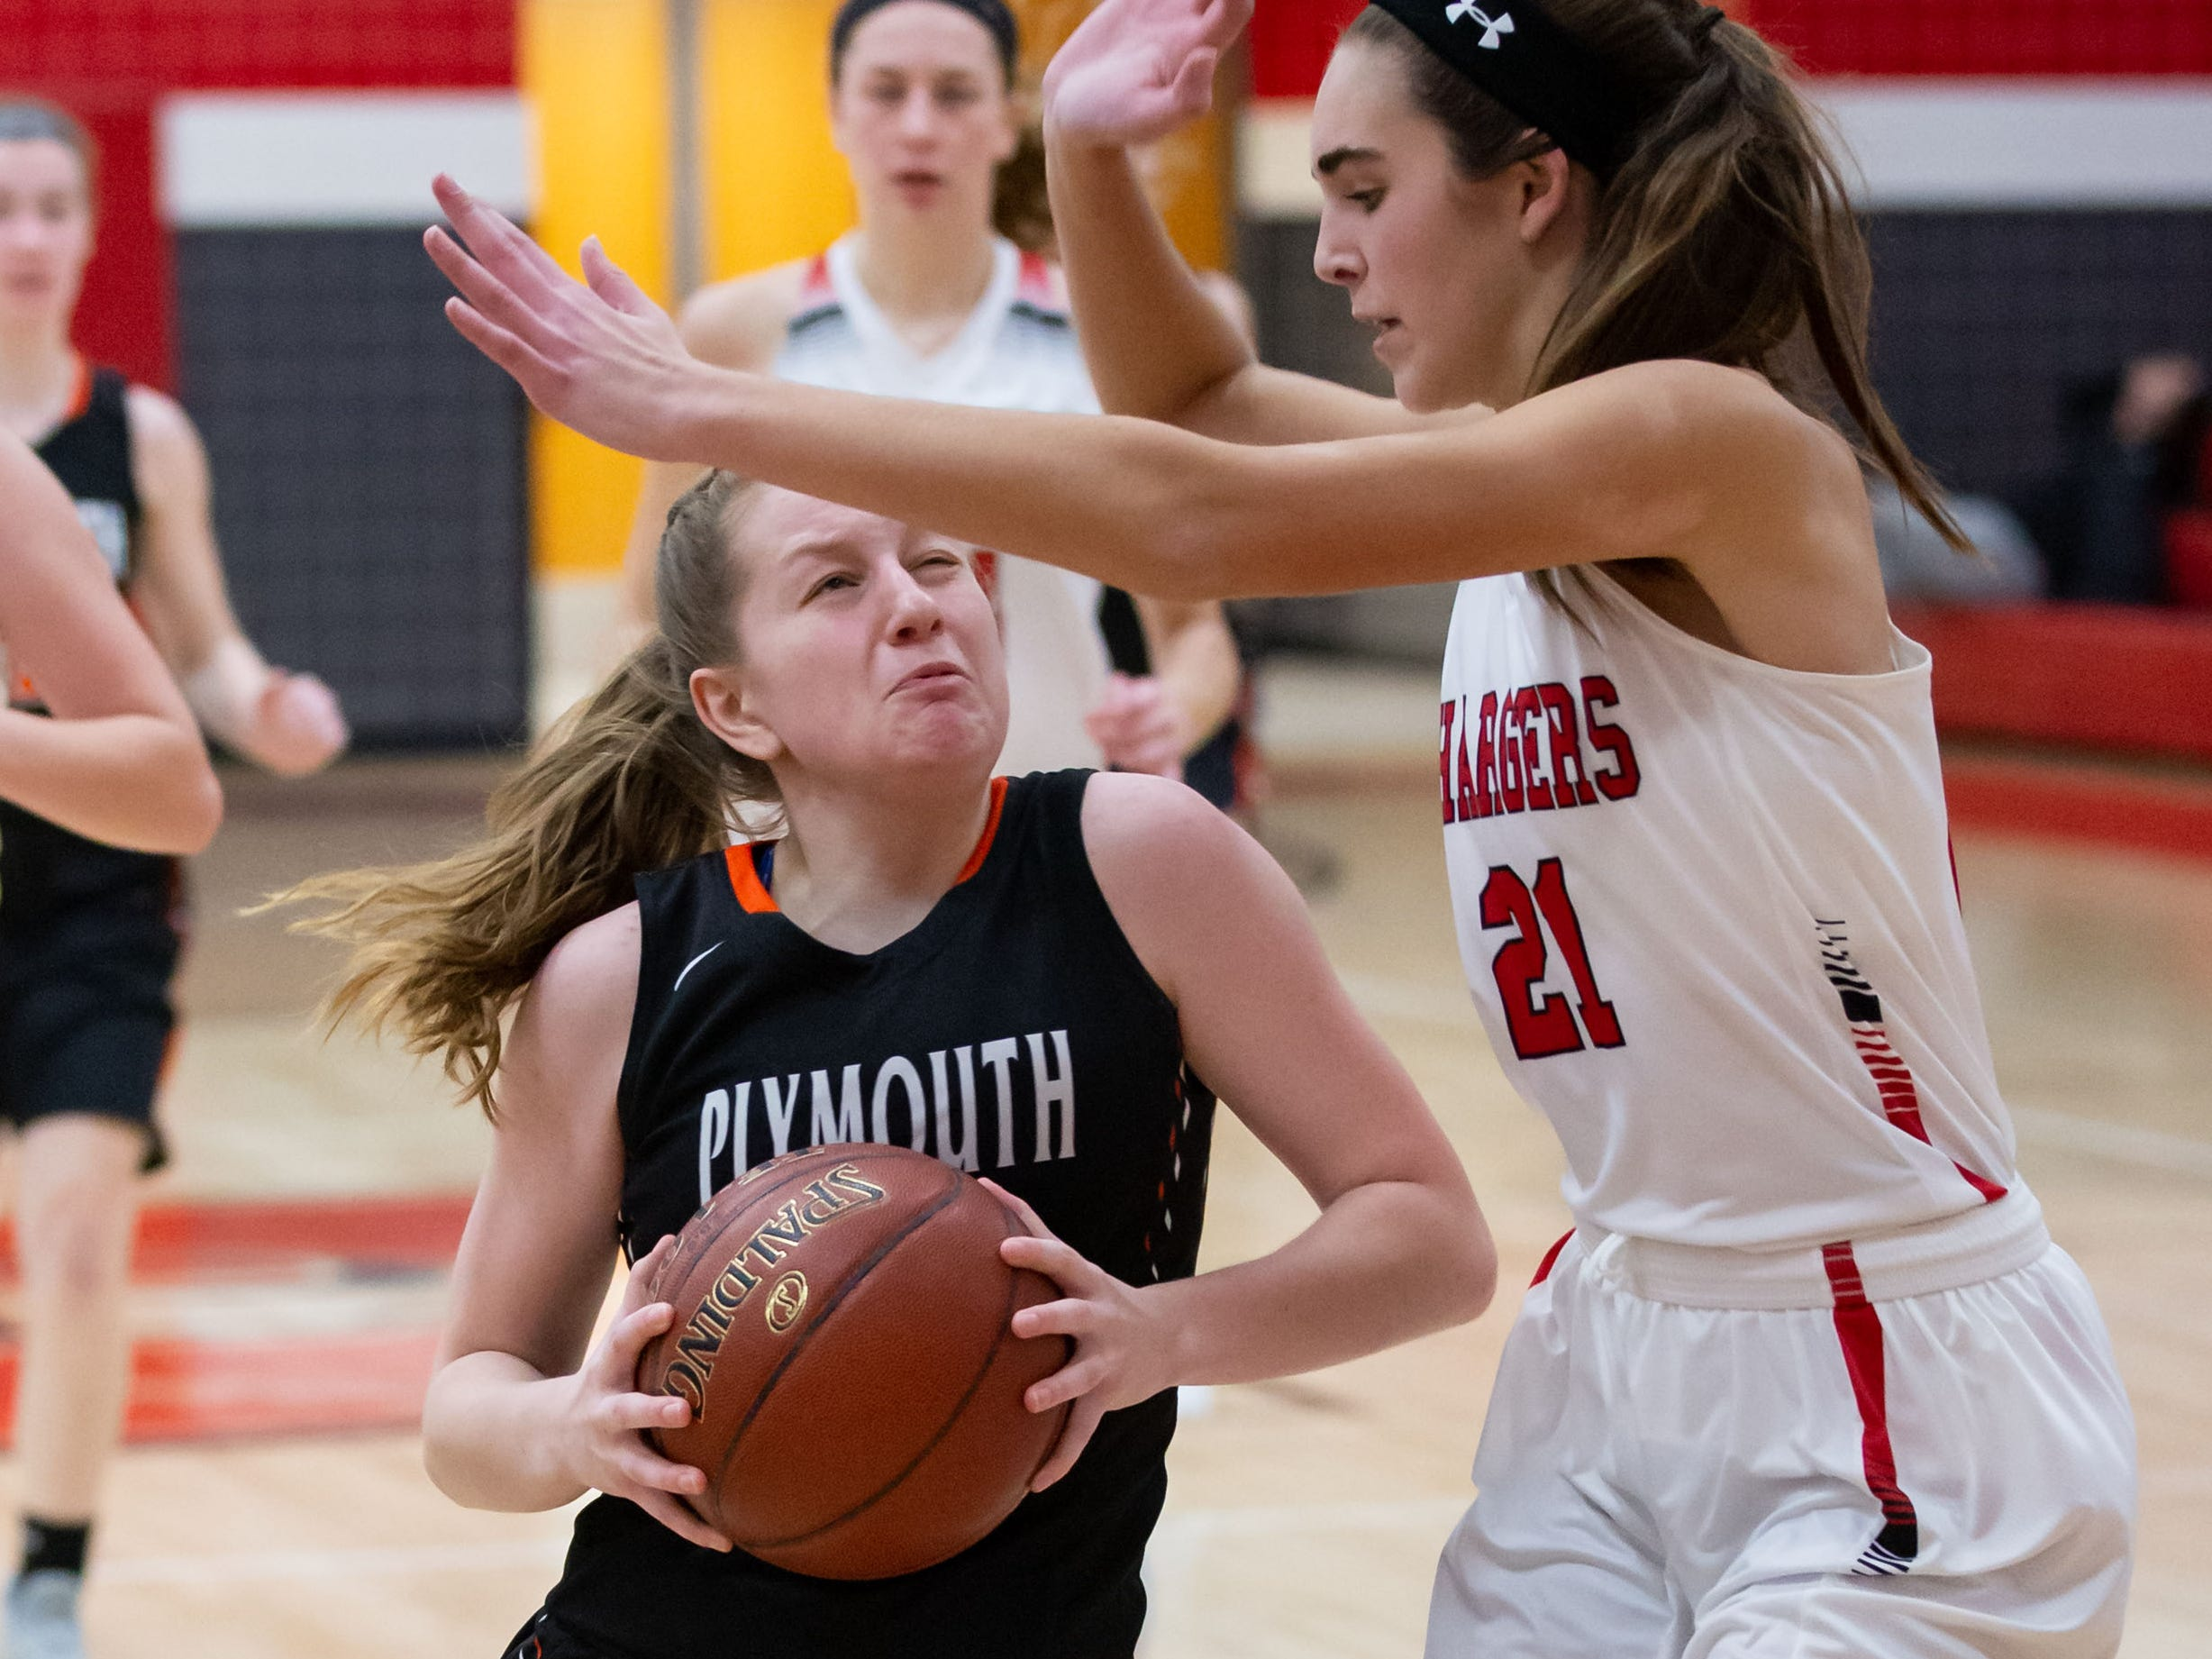 Plymouth junior Alesha Kaat-Fohr (4) battles Hamilton's Julia Nolde (21) in the lane at Hamilton on Tuesday, Dec. 4, 2018.